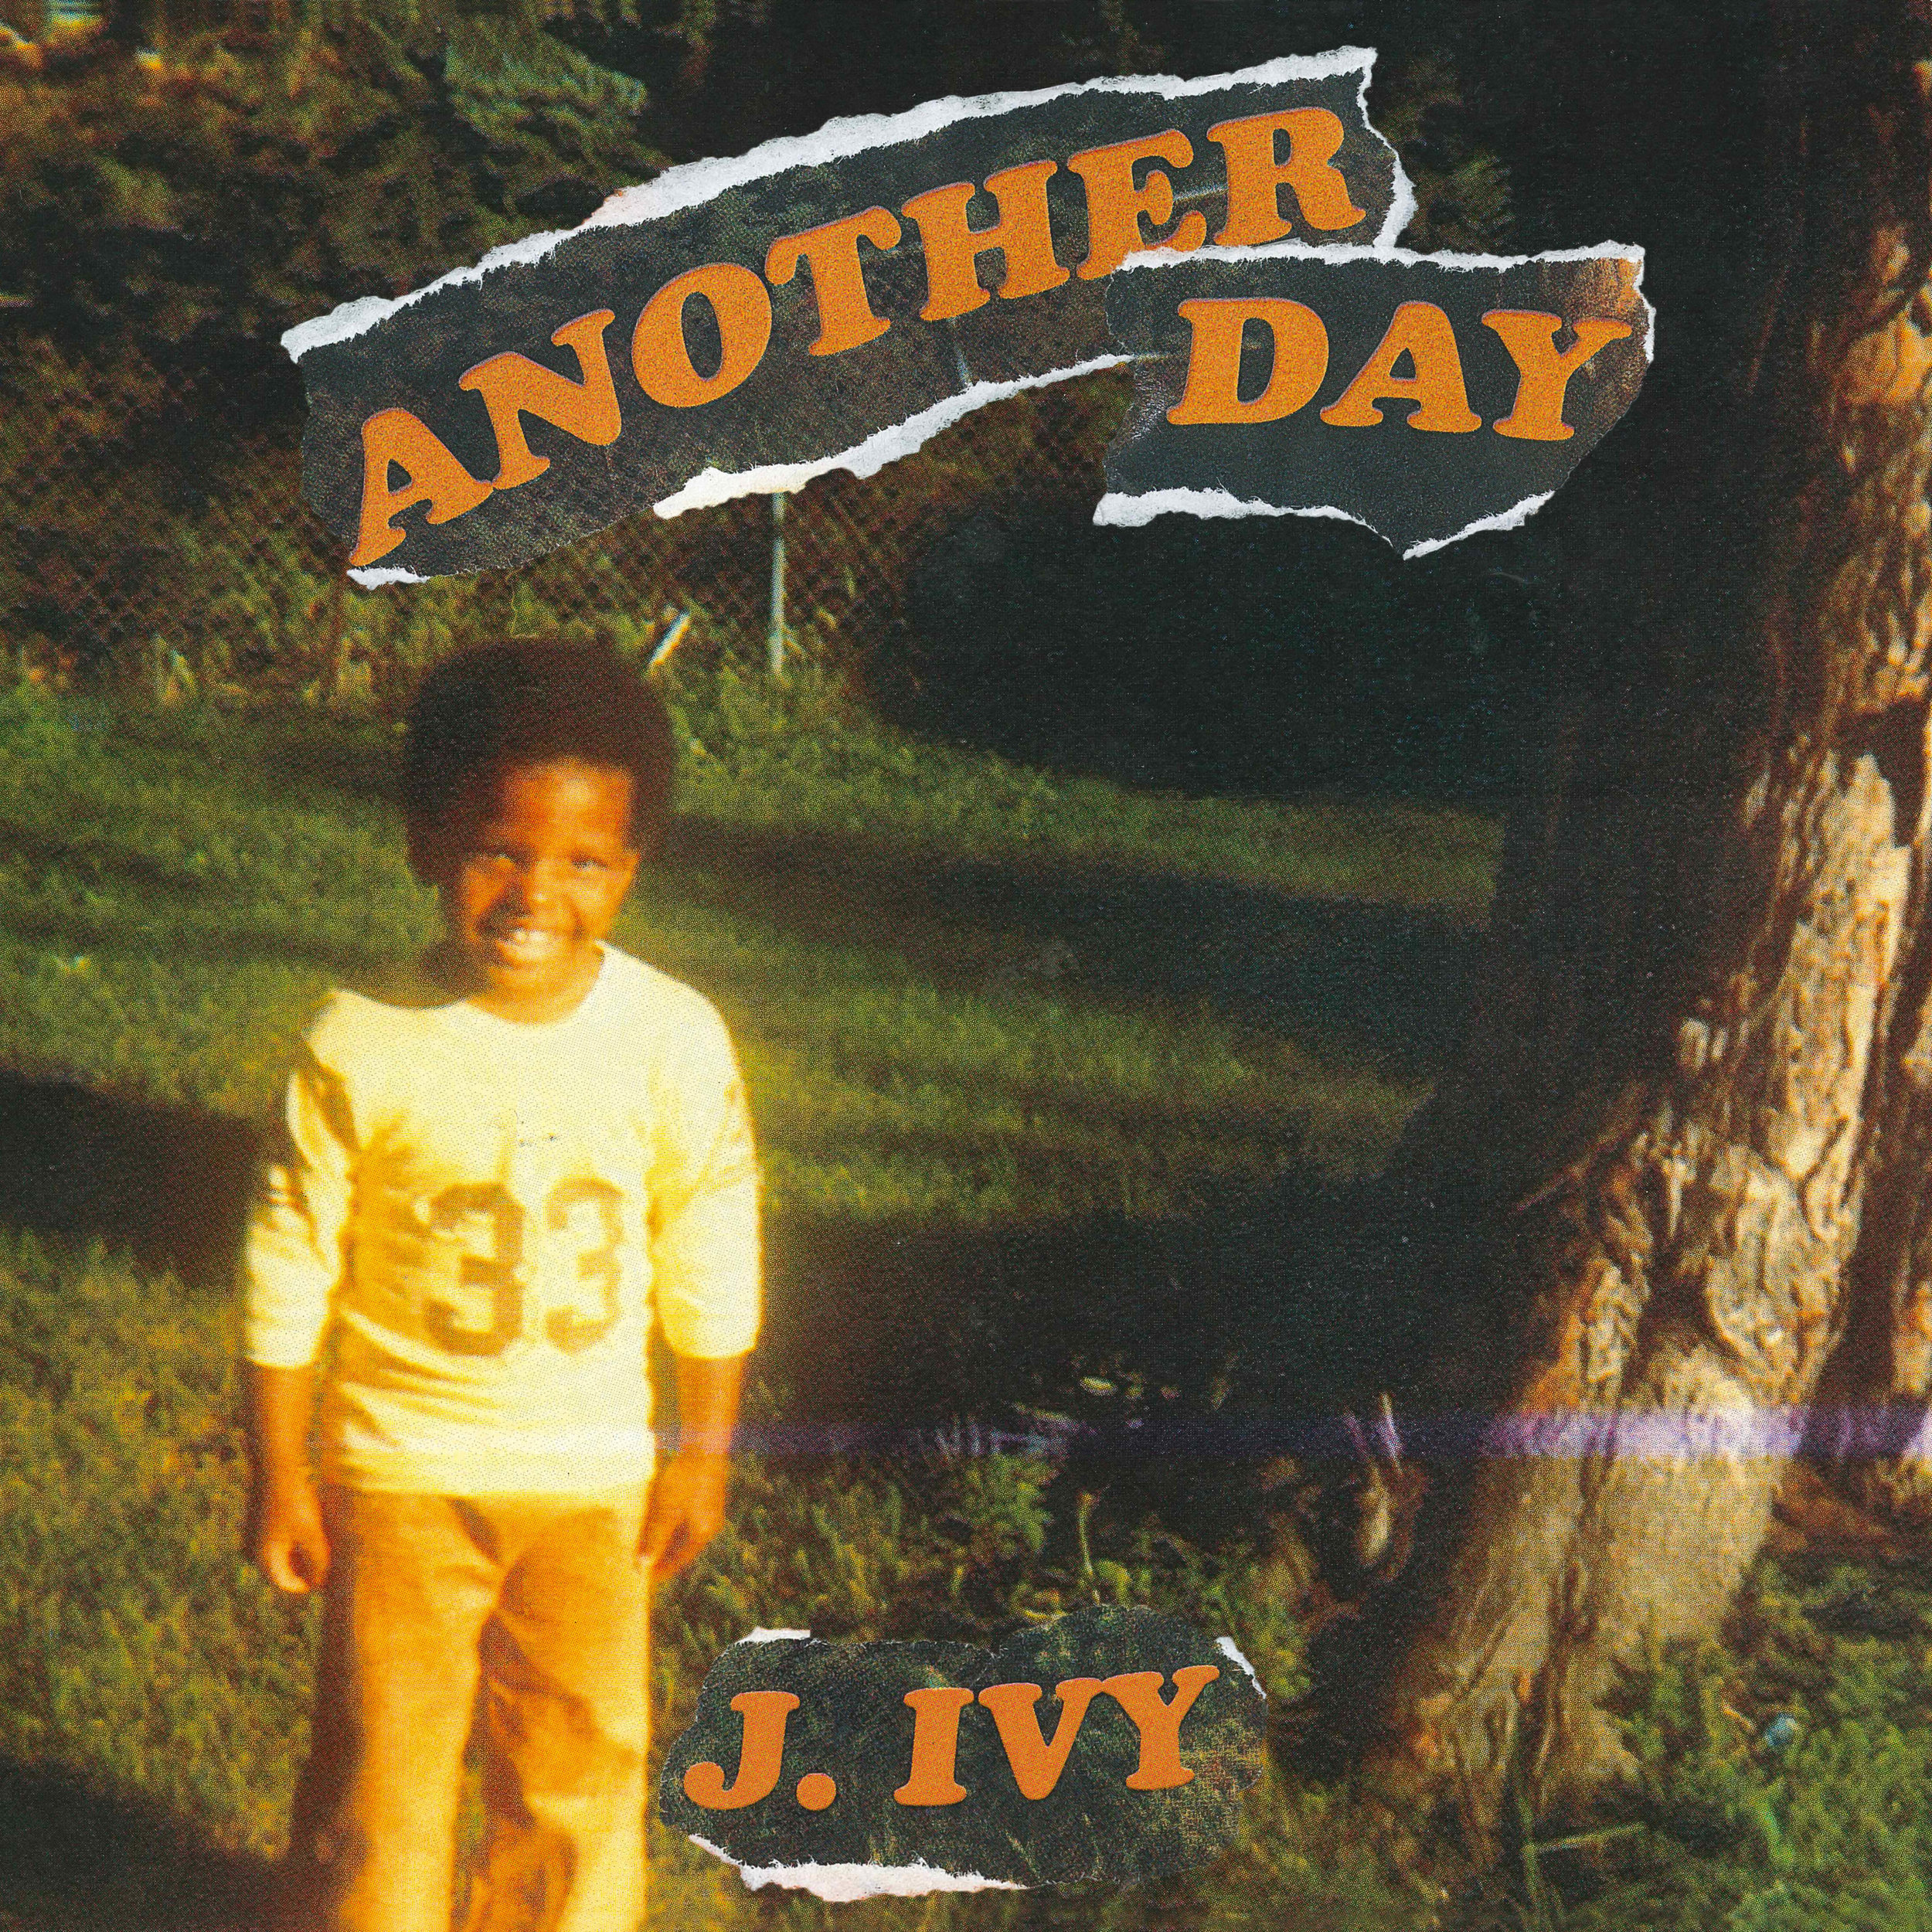 Buy Another Day on iTunes $.99